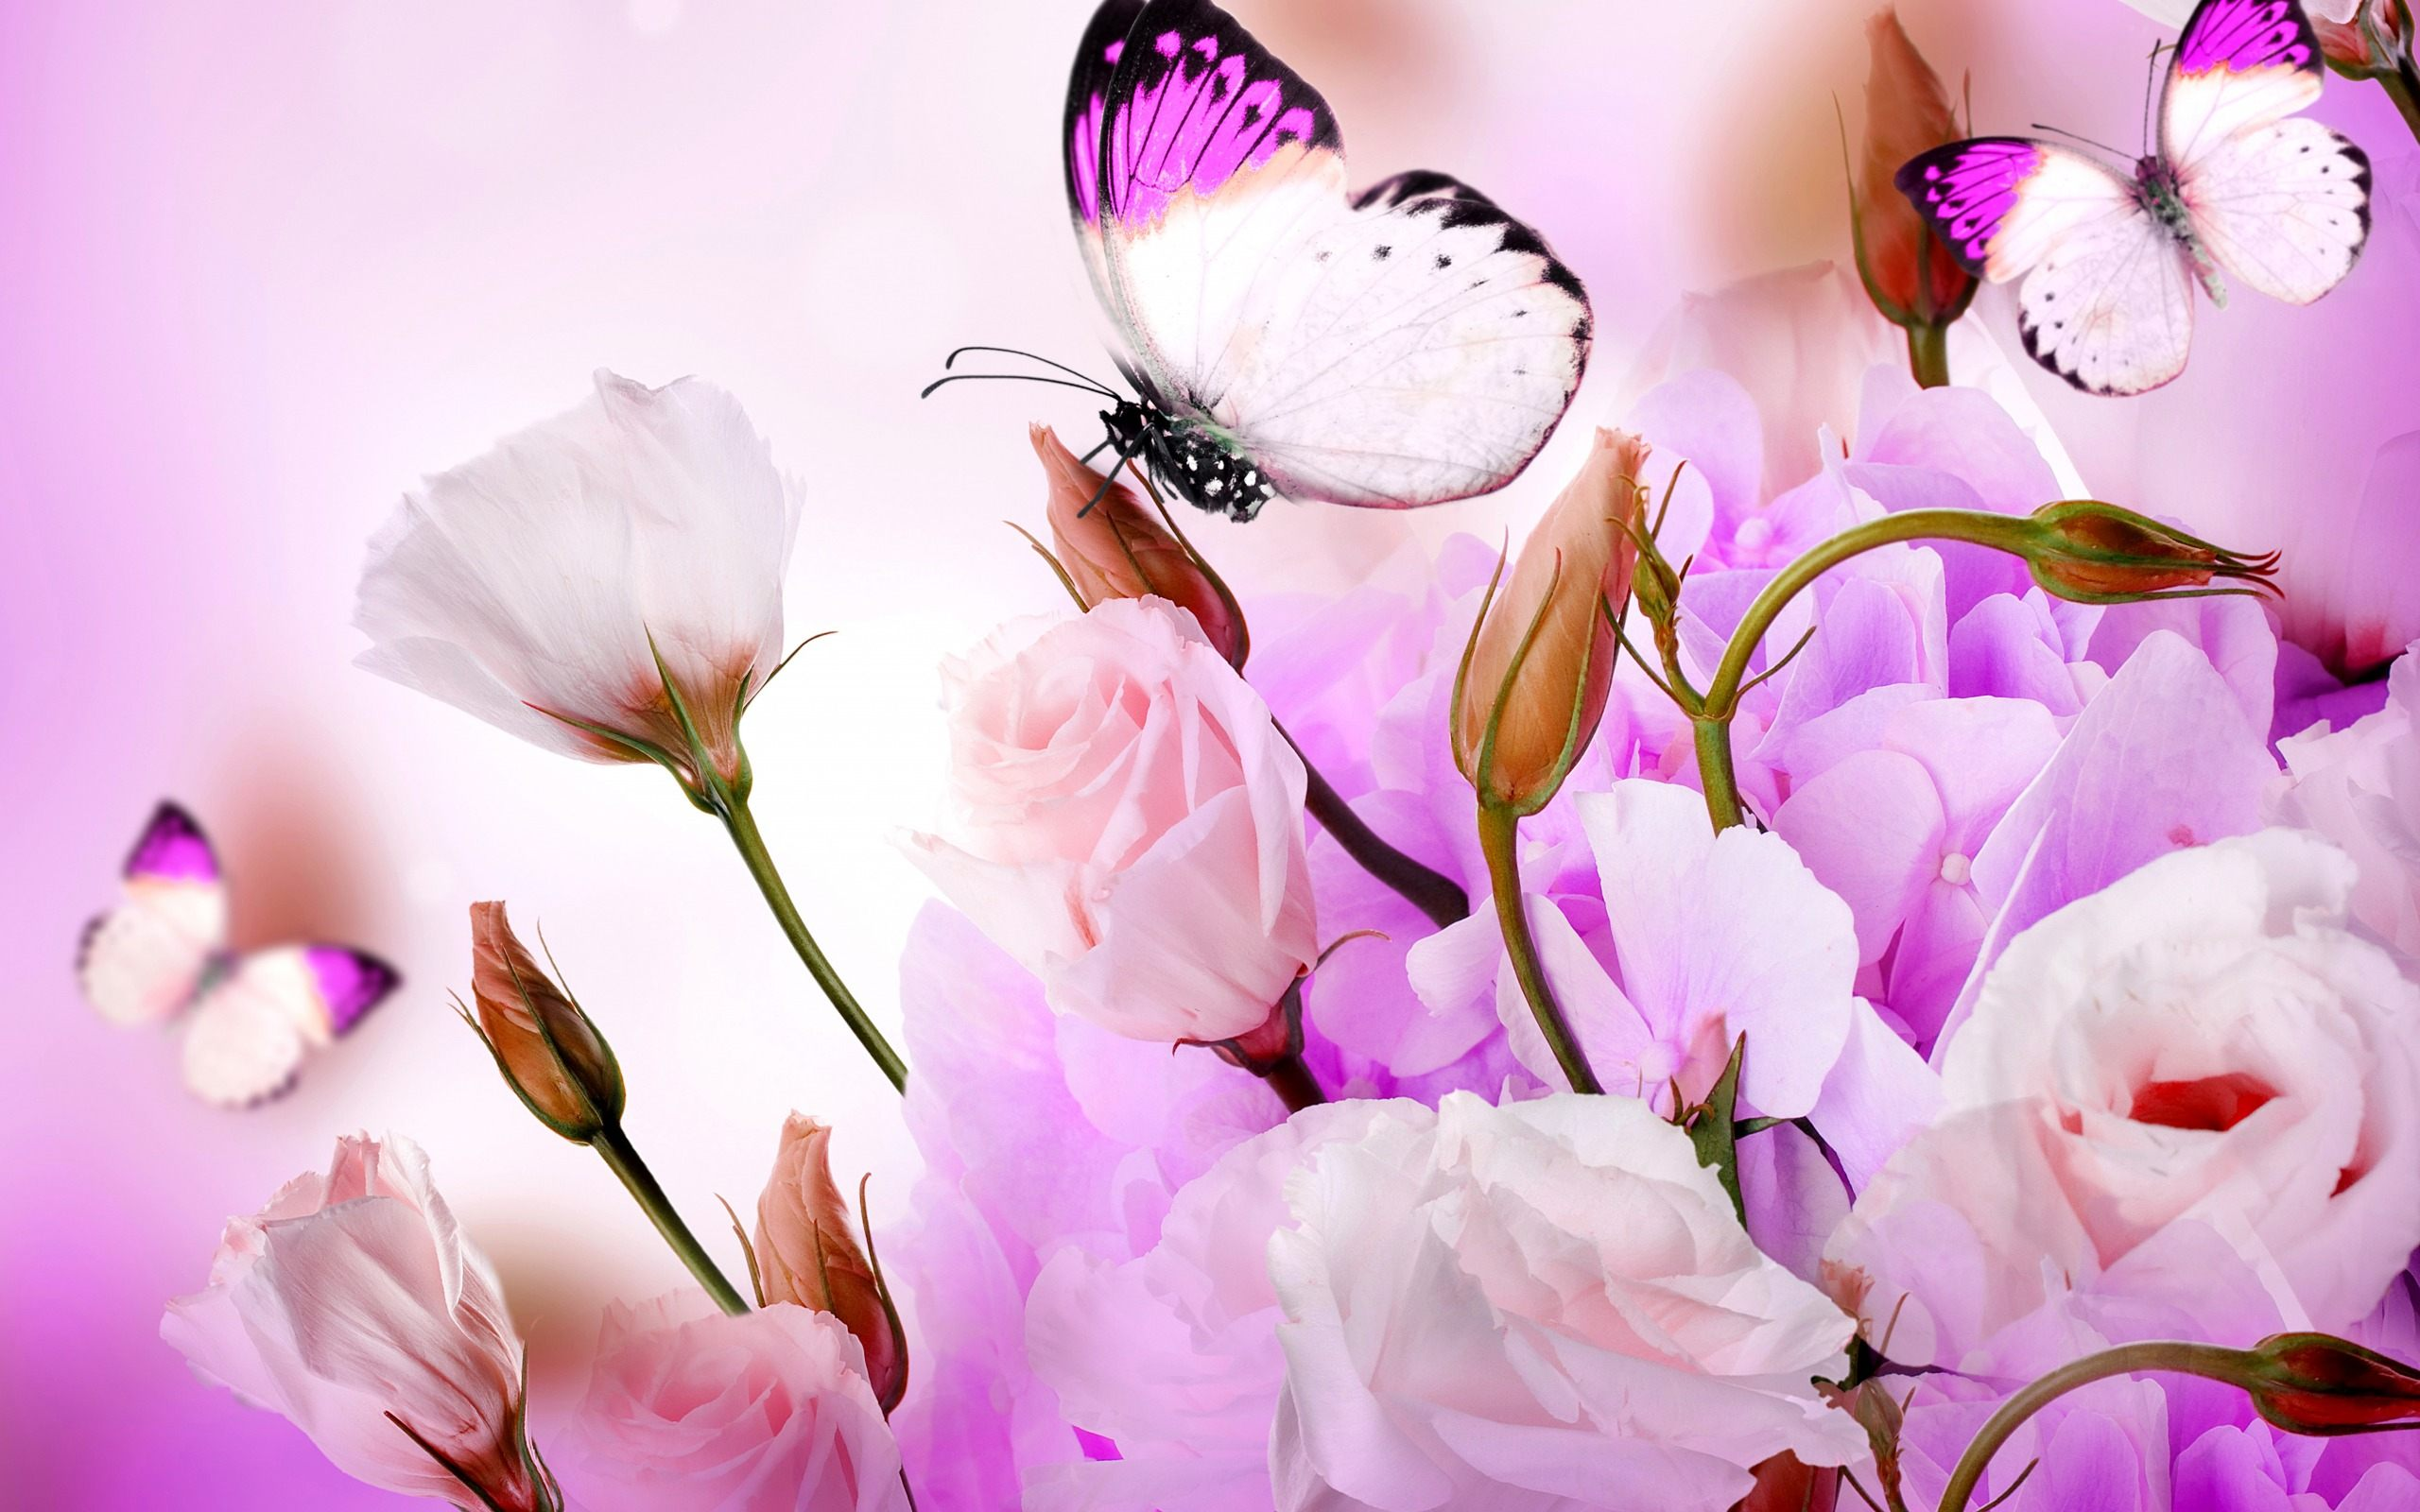 Flowers and butterflies wallpaper sf wallpaper flower with butterfly wallpaper hd download high quality izmirmasajfo